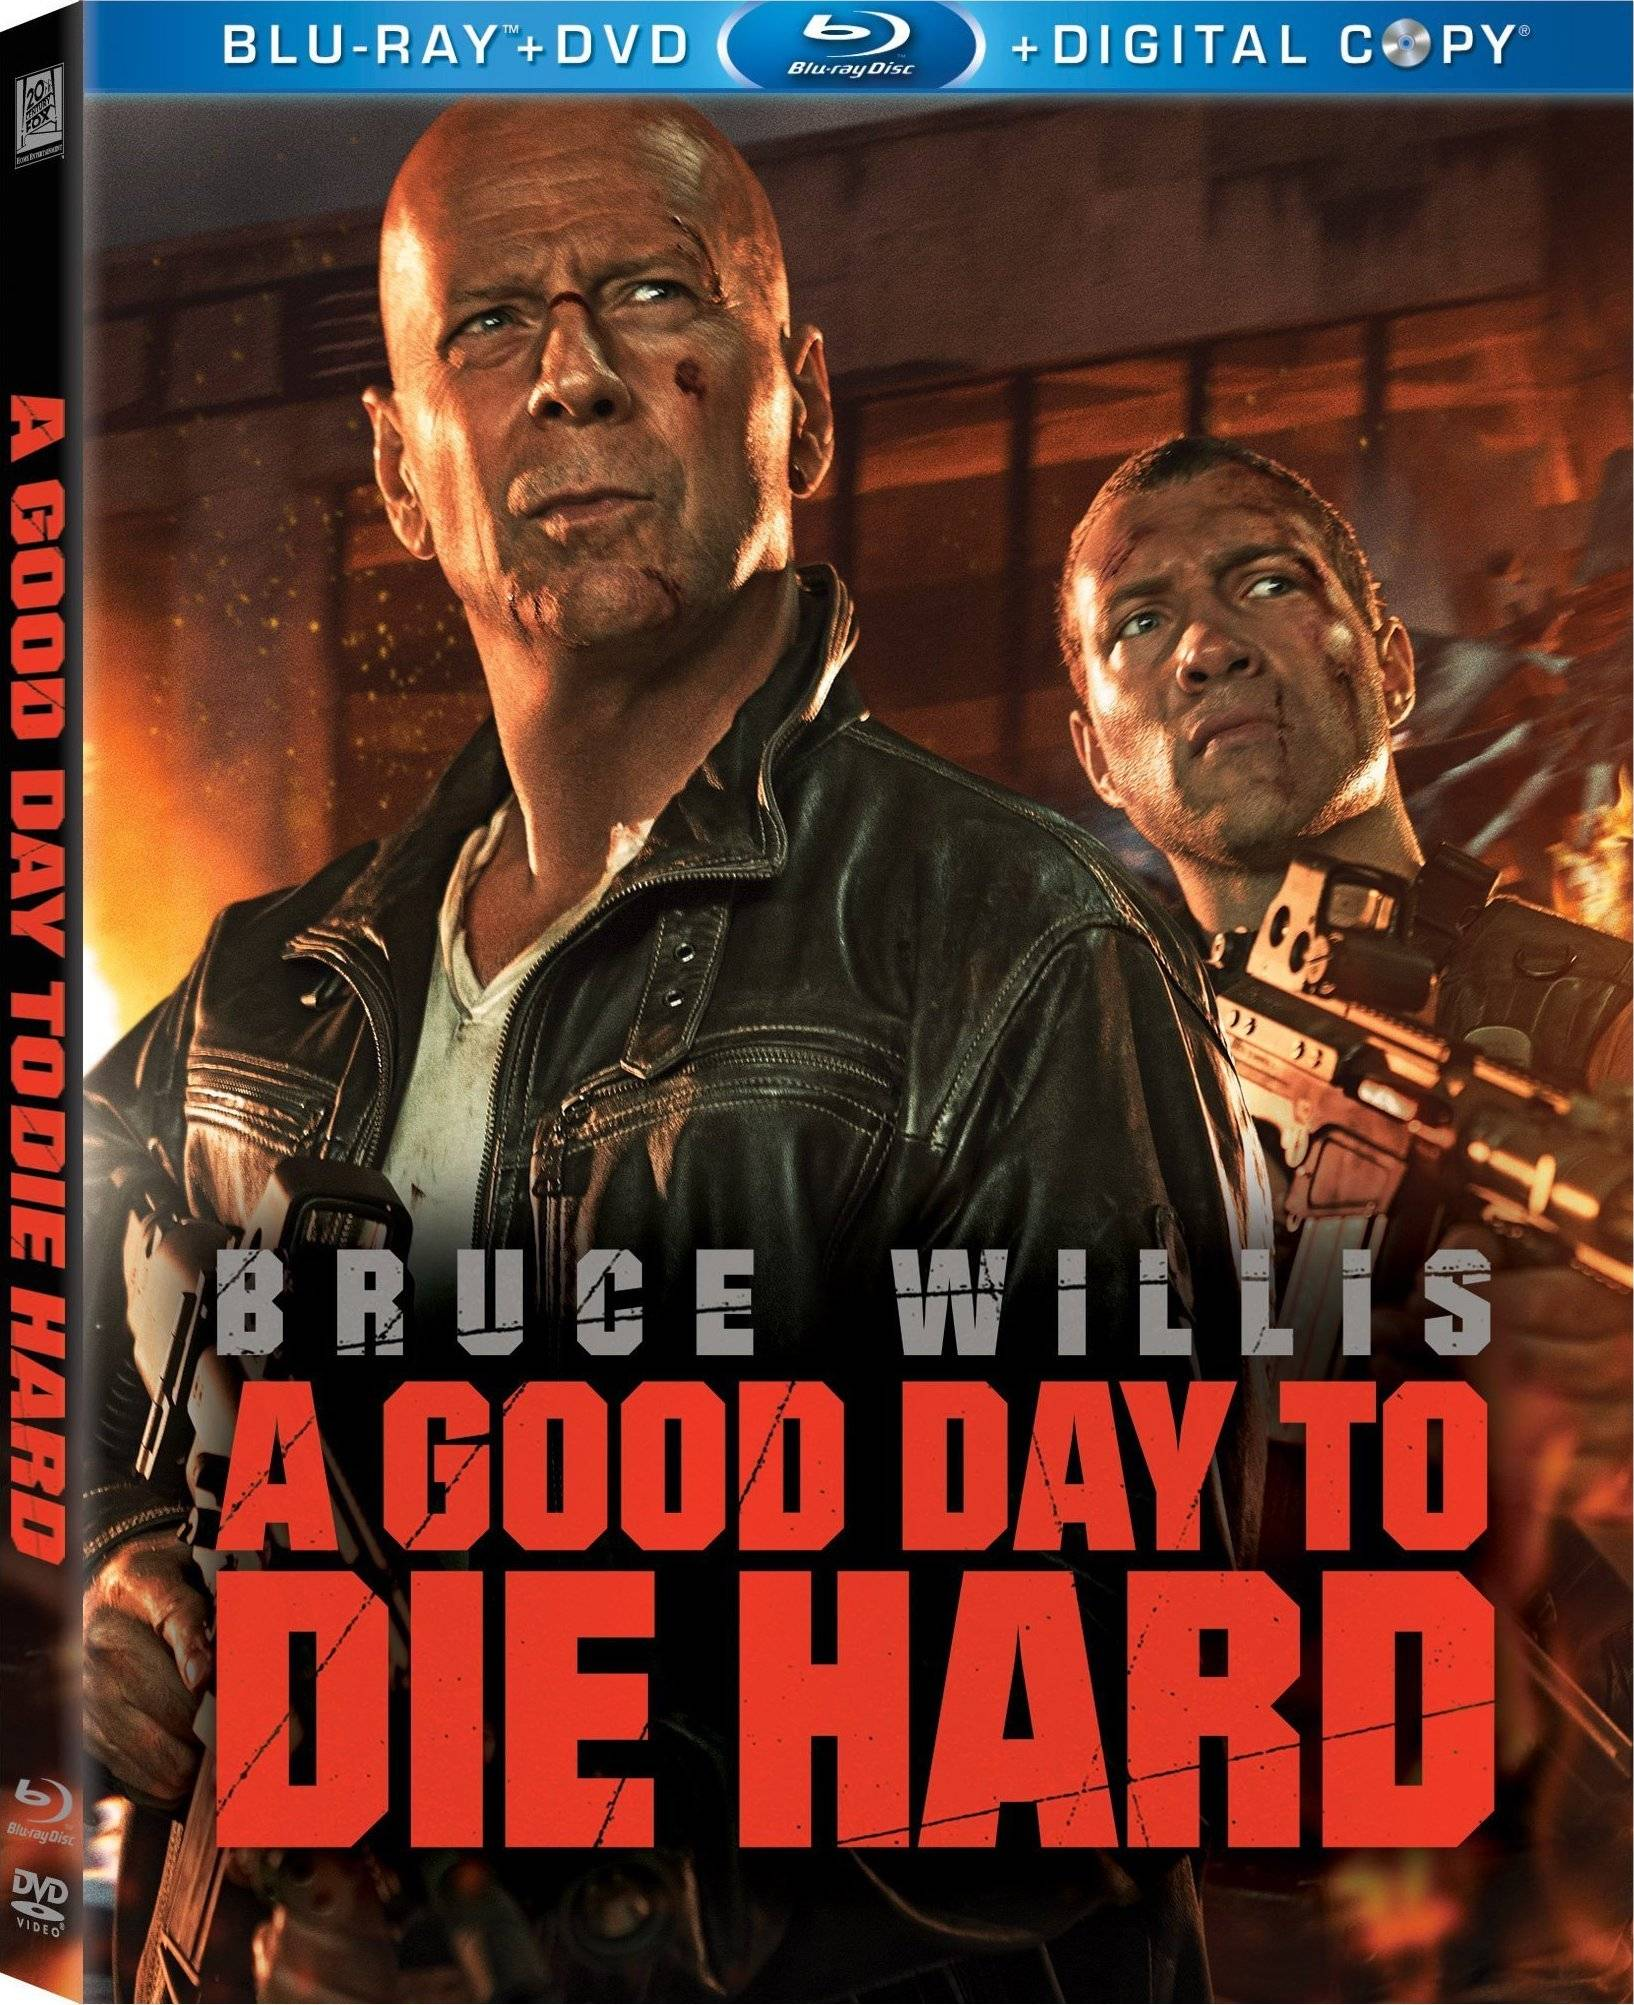 Blu-ray Review: A Good Day to Die Hard